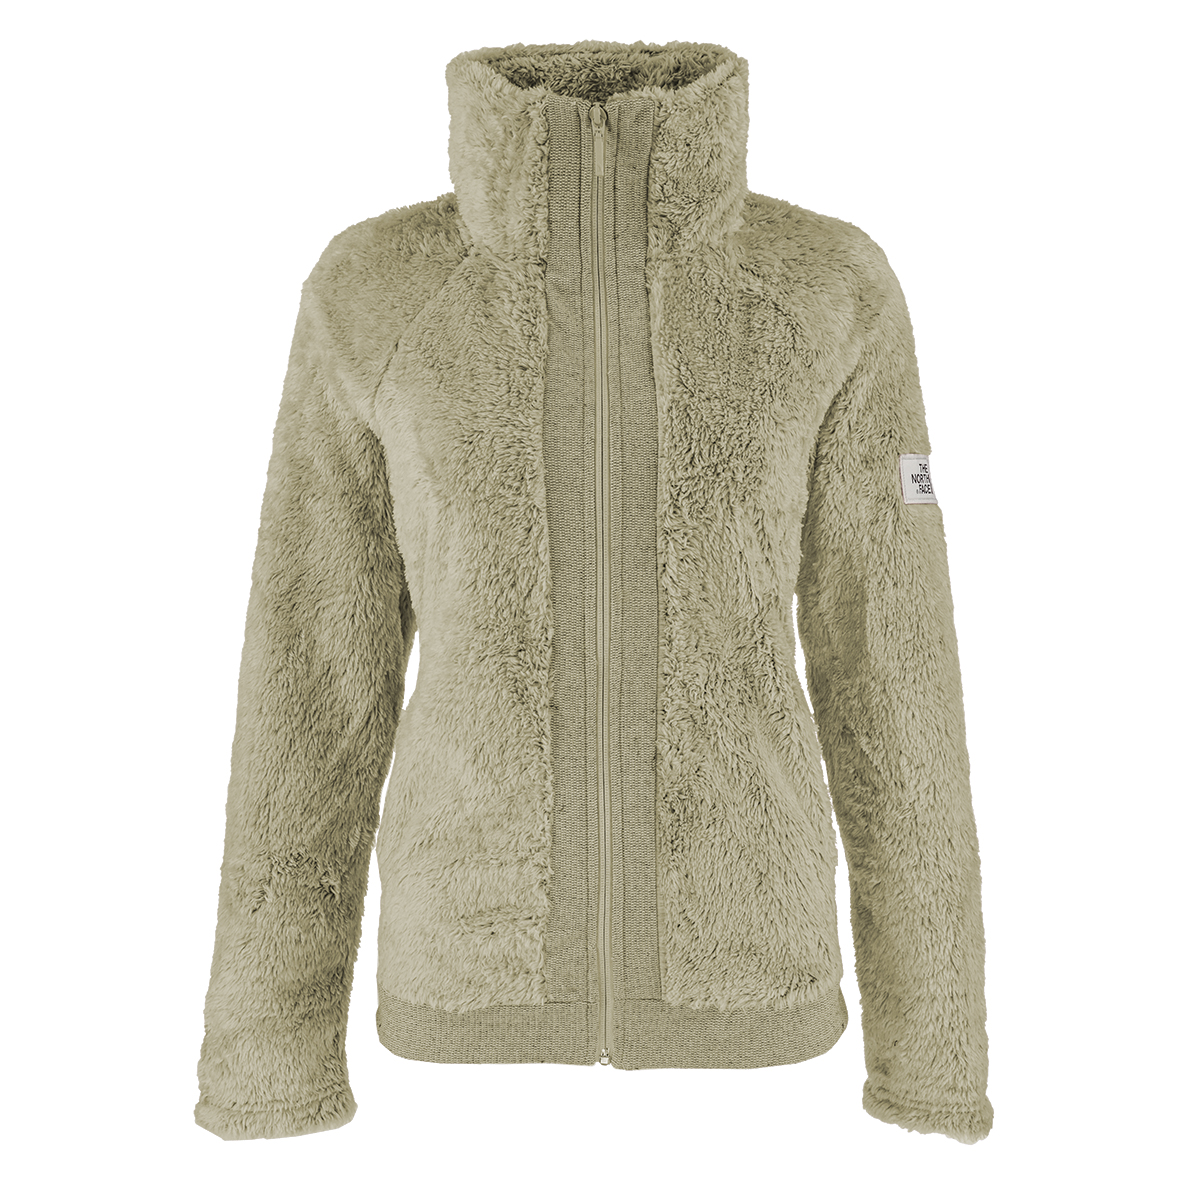 The North Face Women S Furry Fleece Full Zip Jacket Ebay